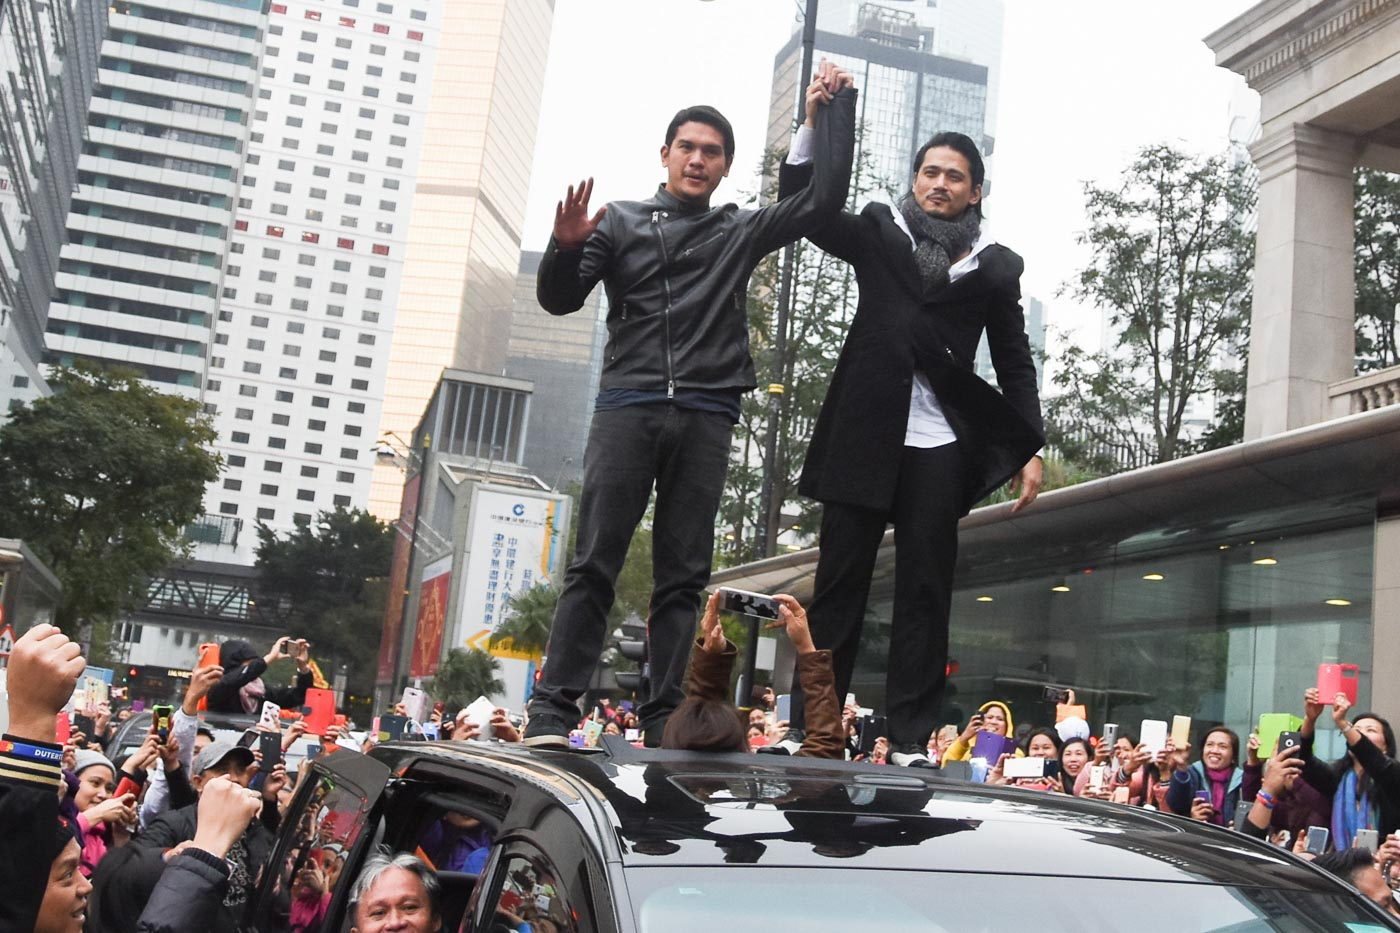 BAD BOY MEETS BAD BOY. Baste with Robin Padilla campaigning for Mayor Duterte in Hongkong for OFW votes. Photo by Edwin Espejo/Rappler